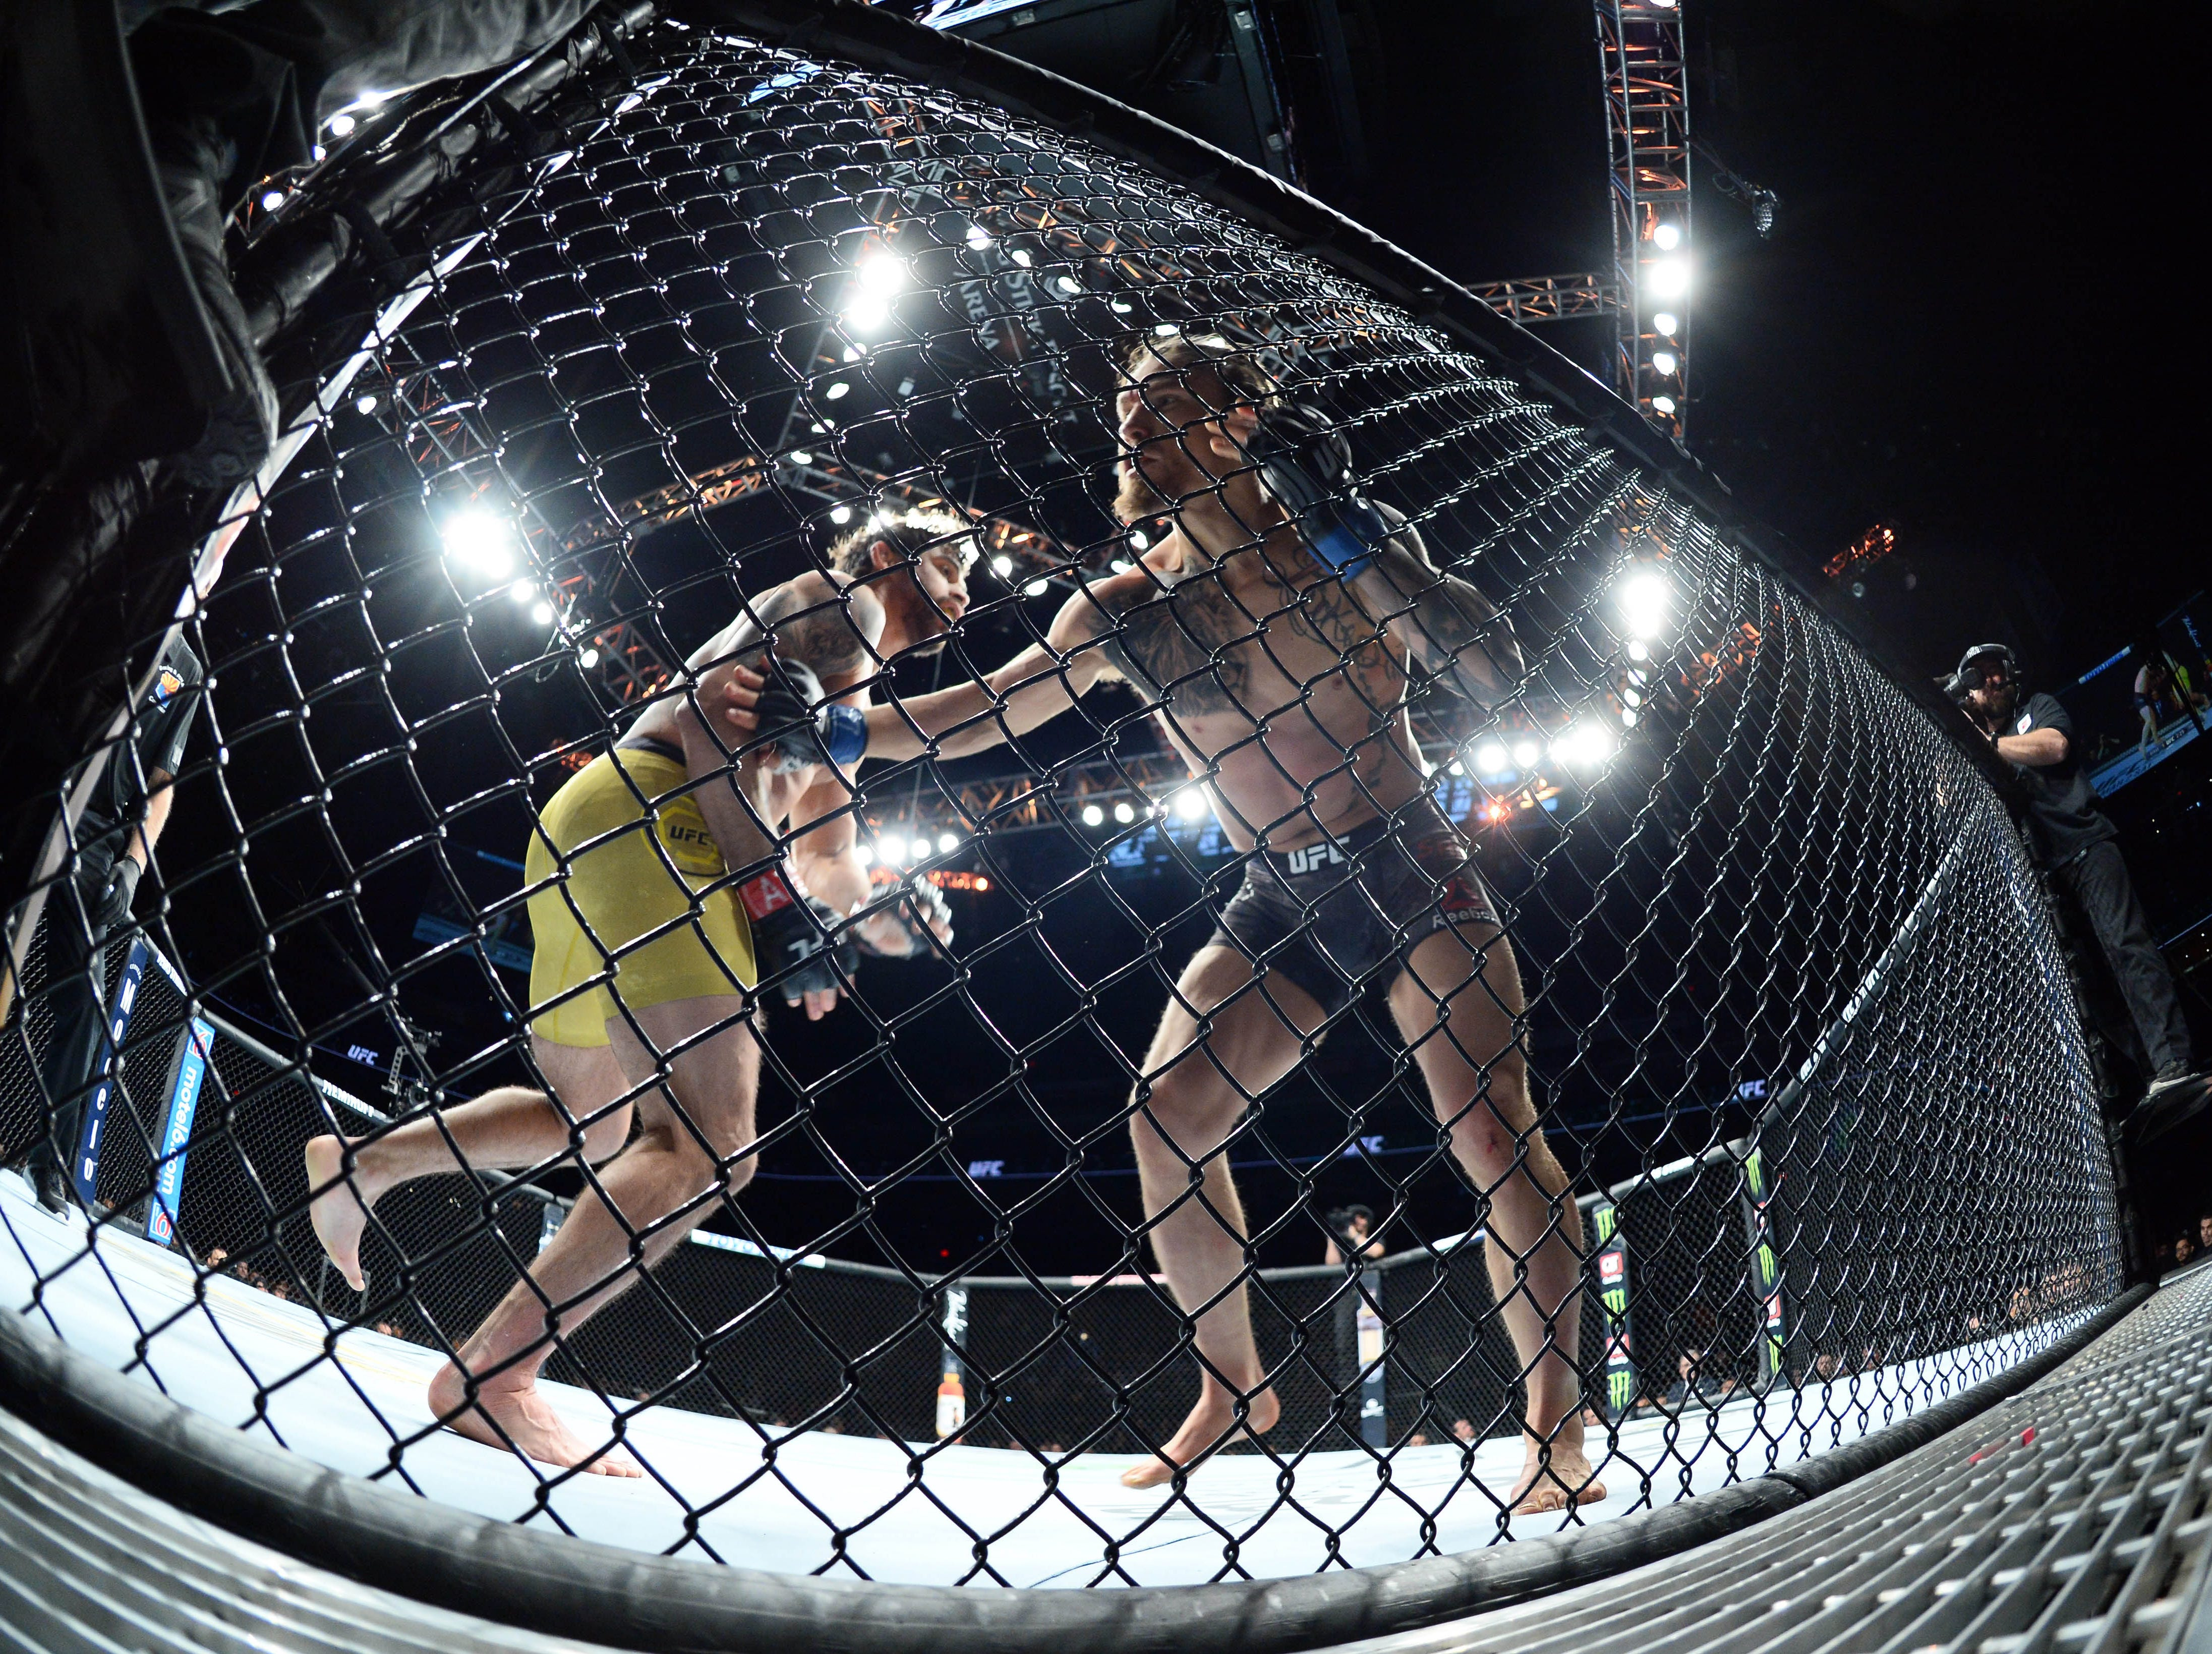 Renan Barao (red gloves) and Luke Sanders (blue gloves) spar into the cage during their bantamweight bout at UFC Fight Night at Talking Stick Resort Arena. Sanders won second round finish.